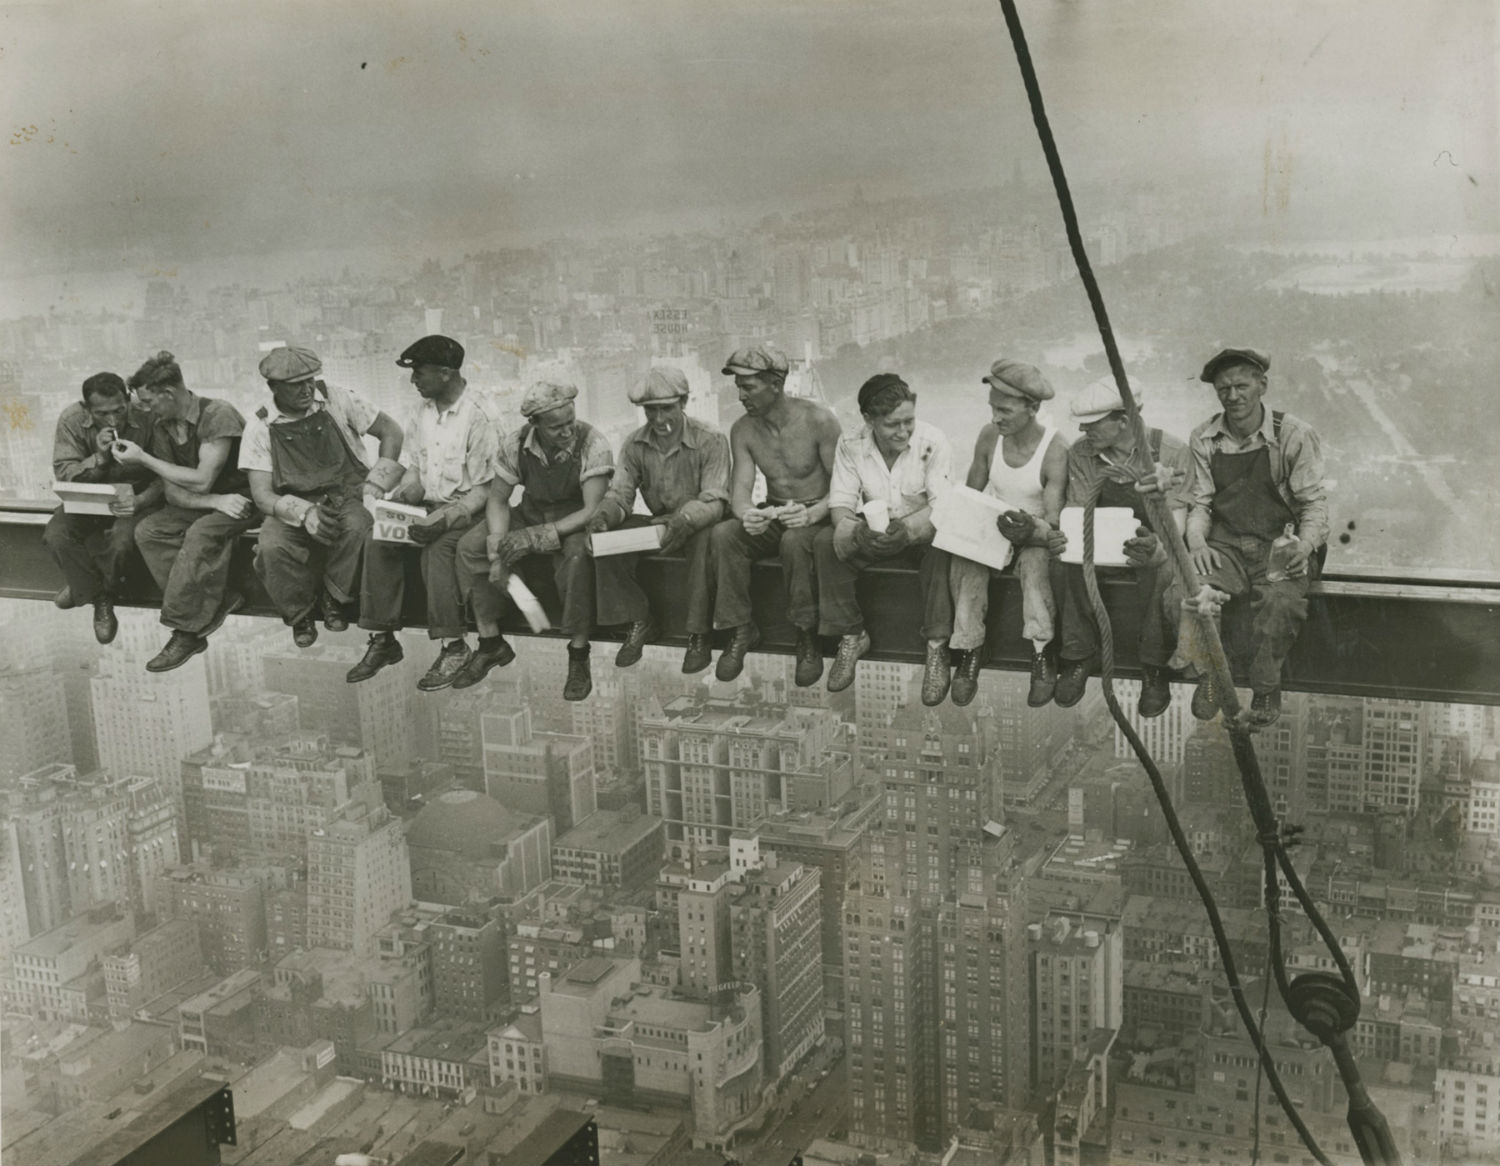 Charles C. Ebbets, Lunchtime Atop the World's Largest Building, Rockefeller Center, New York, 1932. Courtesy of Howard Greenberg Collection